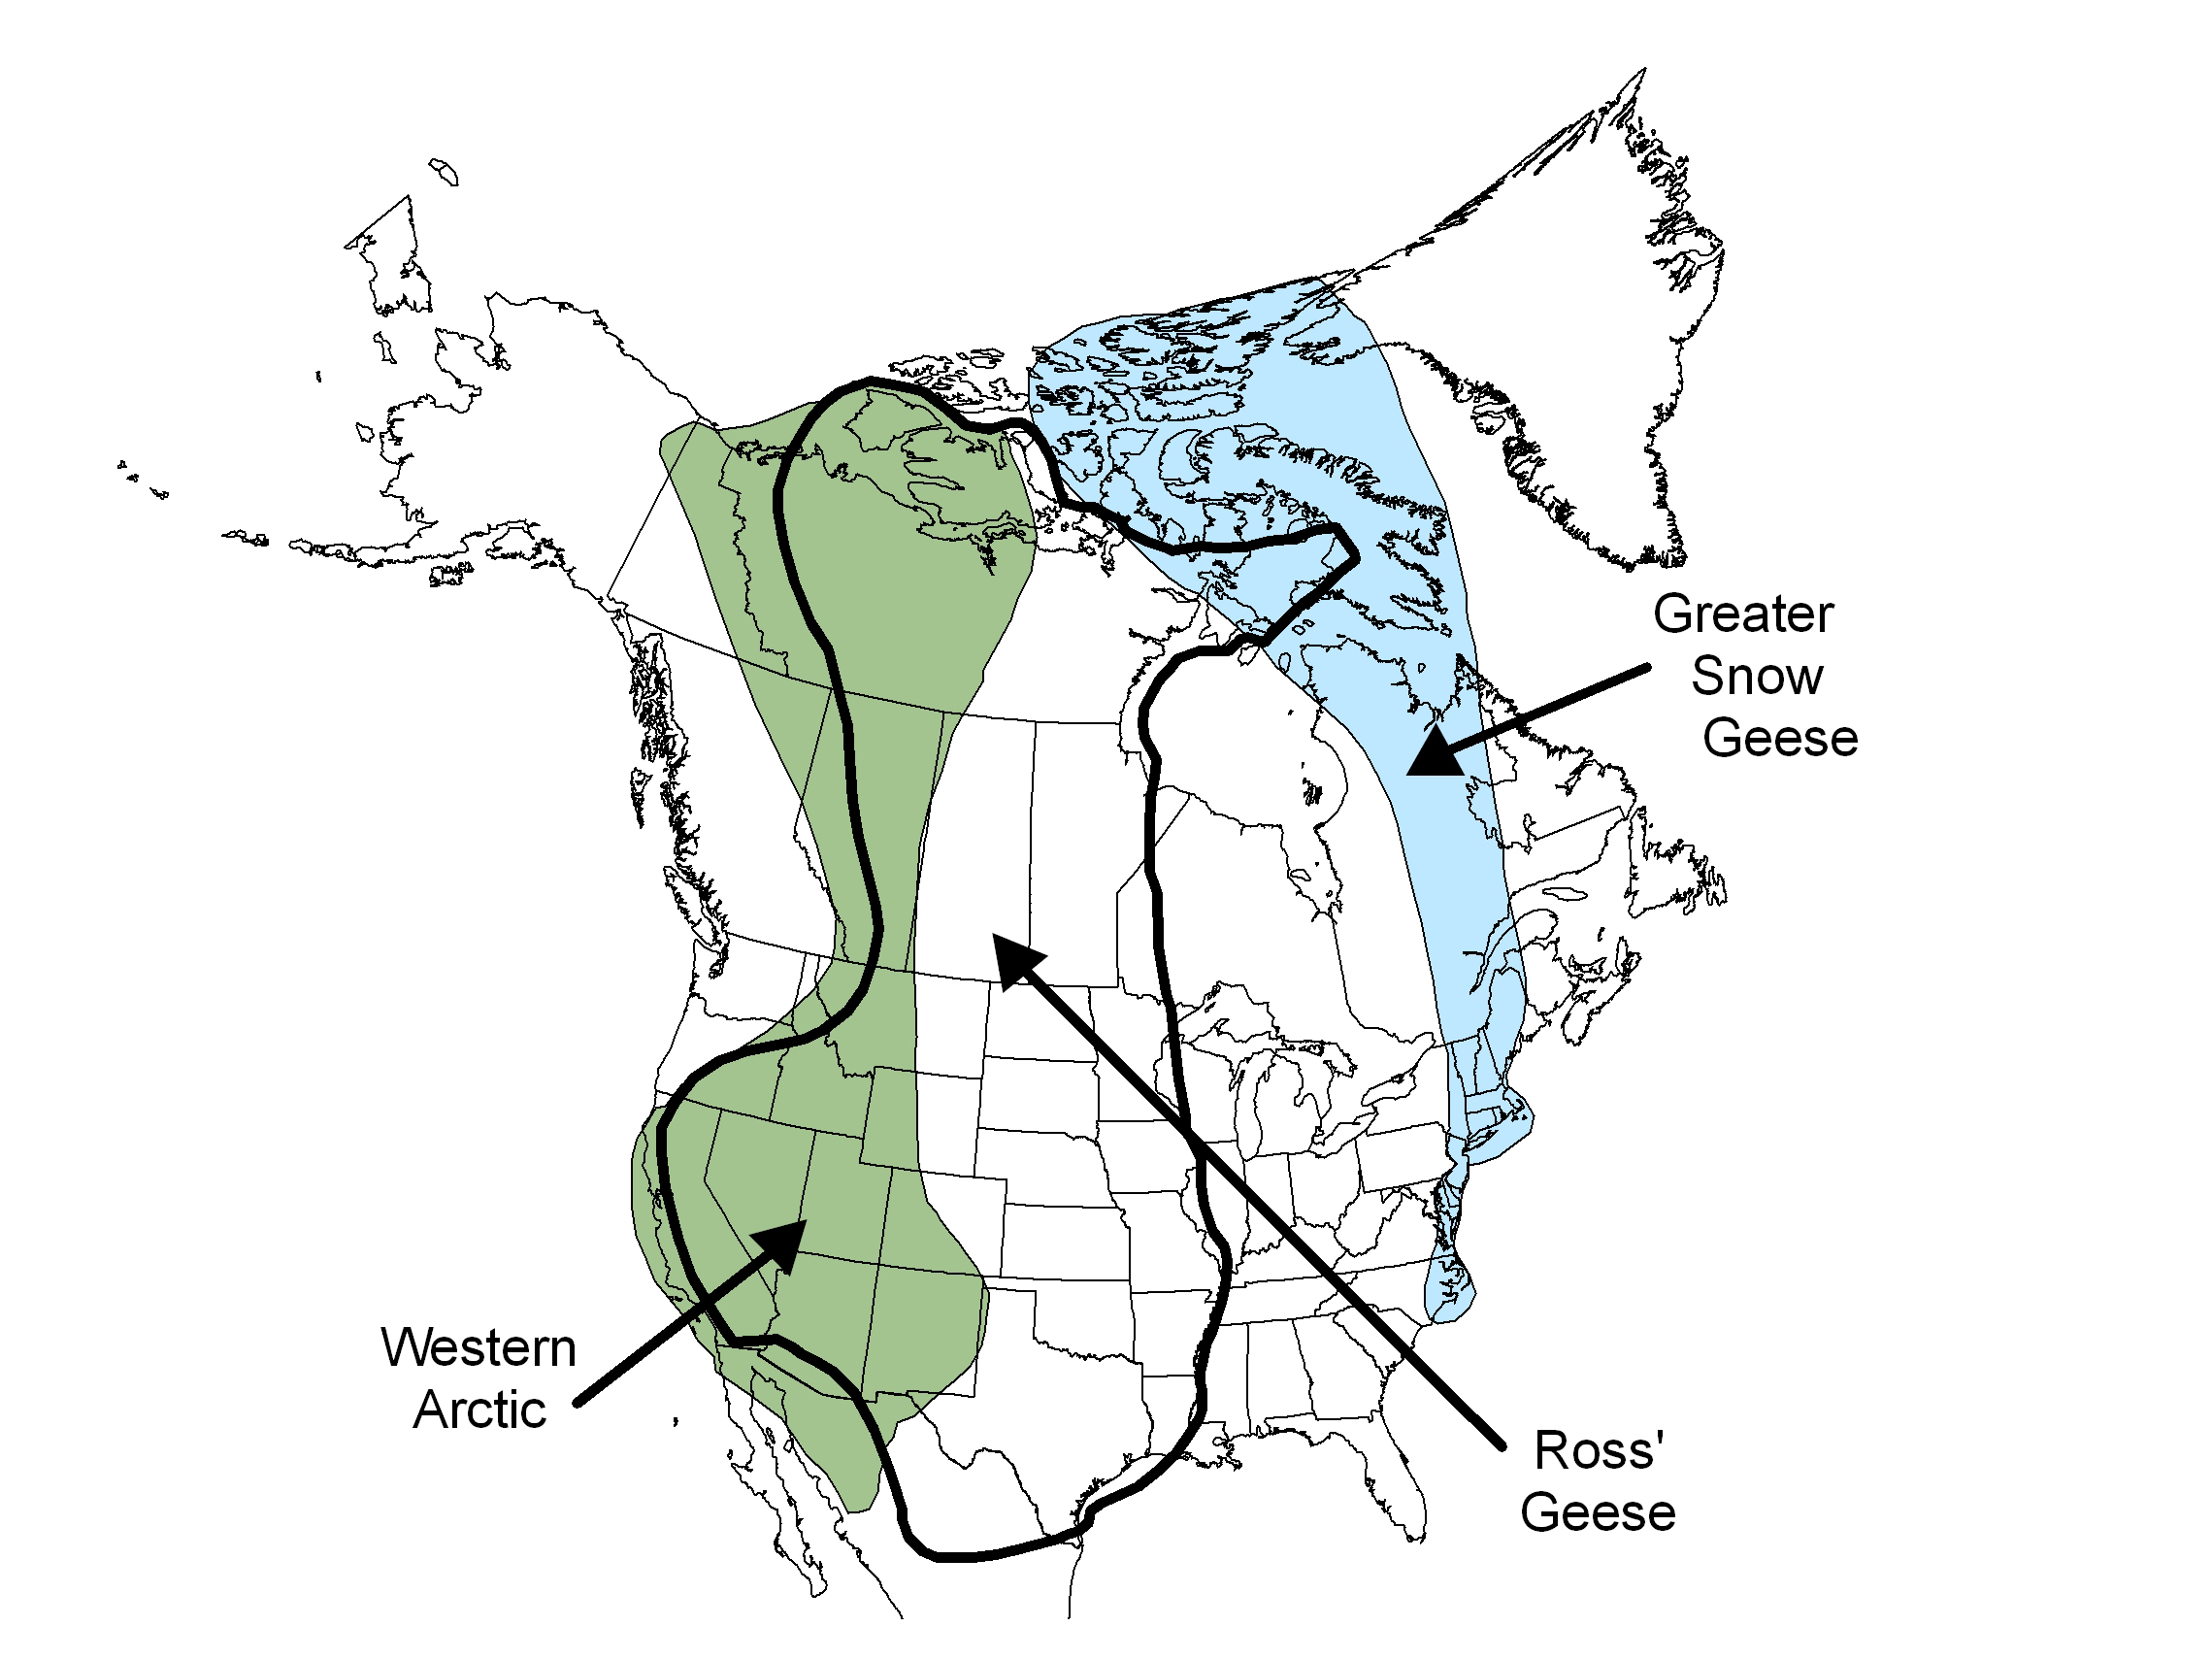 What's changing how snow geese migrate? – Stories from ... on geese locked up, tundra swan range map, geese in flight, pileated woodpecker range map, mexican duck range map, snow goose range map, manta ray lives map, snow goose habitat map, geese as pets, geese flying in v-shape, barnacle goose range map, waterfowl flyway map, geese nesting, geese flying north,